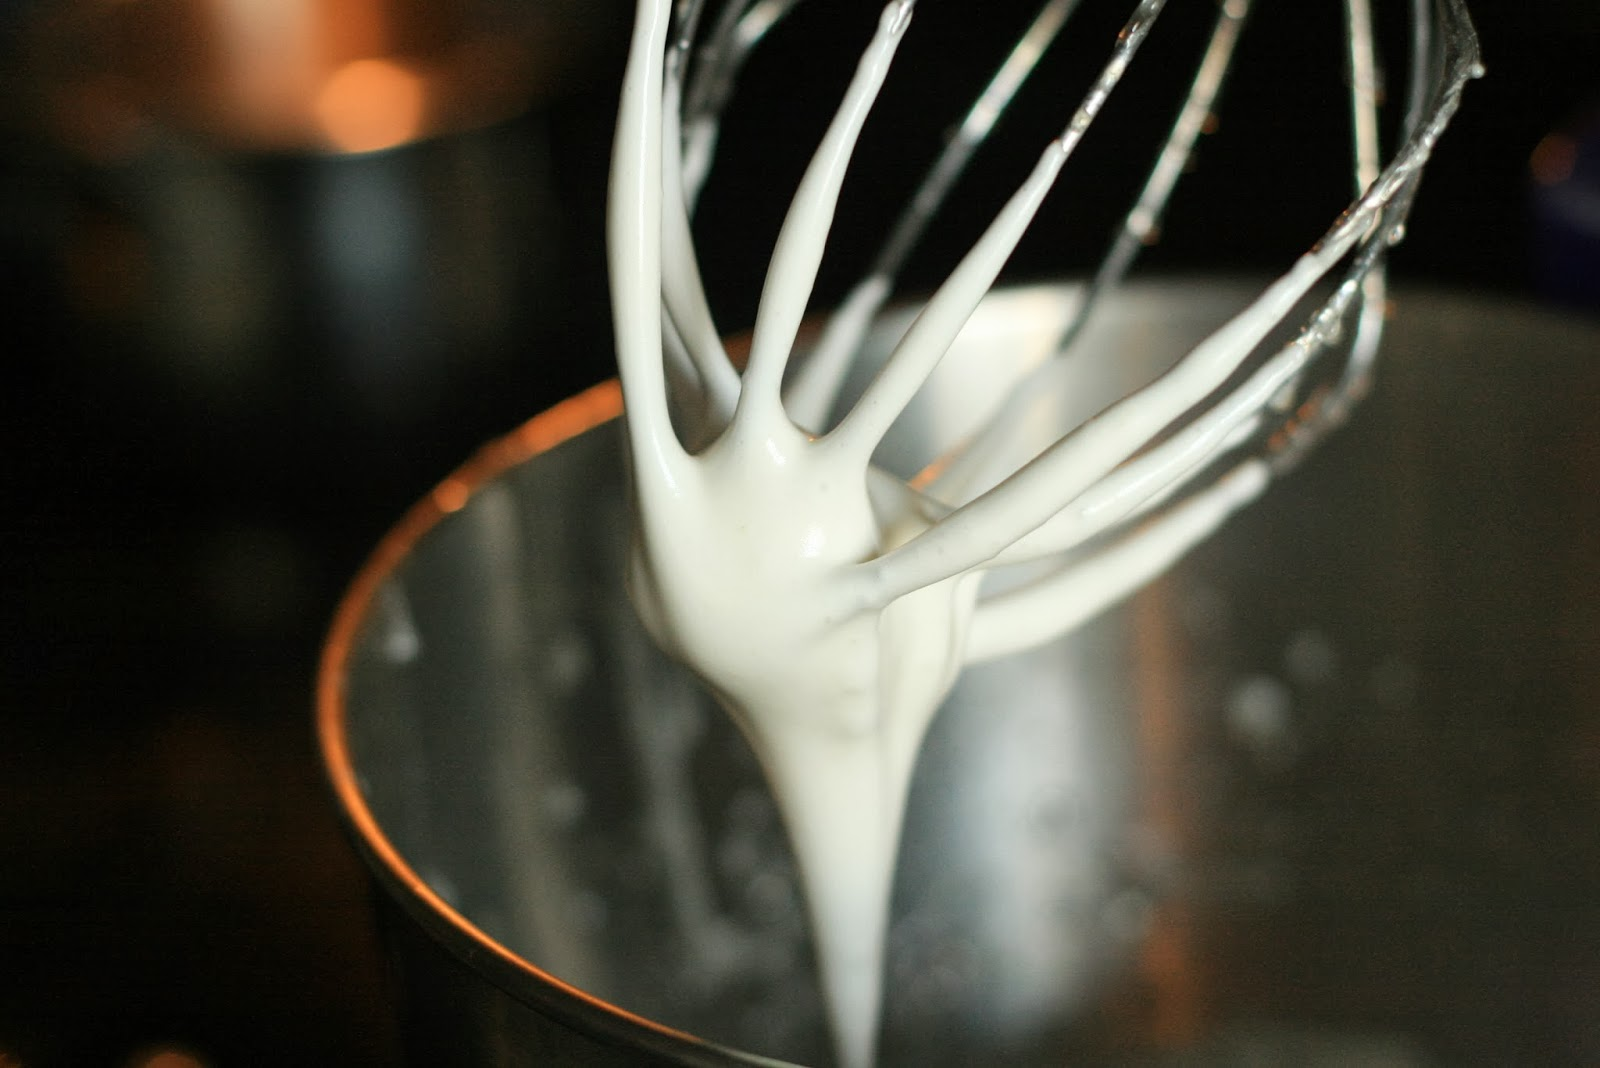 The white egg meringue mixture coating the whisk attachment of a kitchenaid stand mixer.